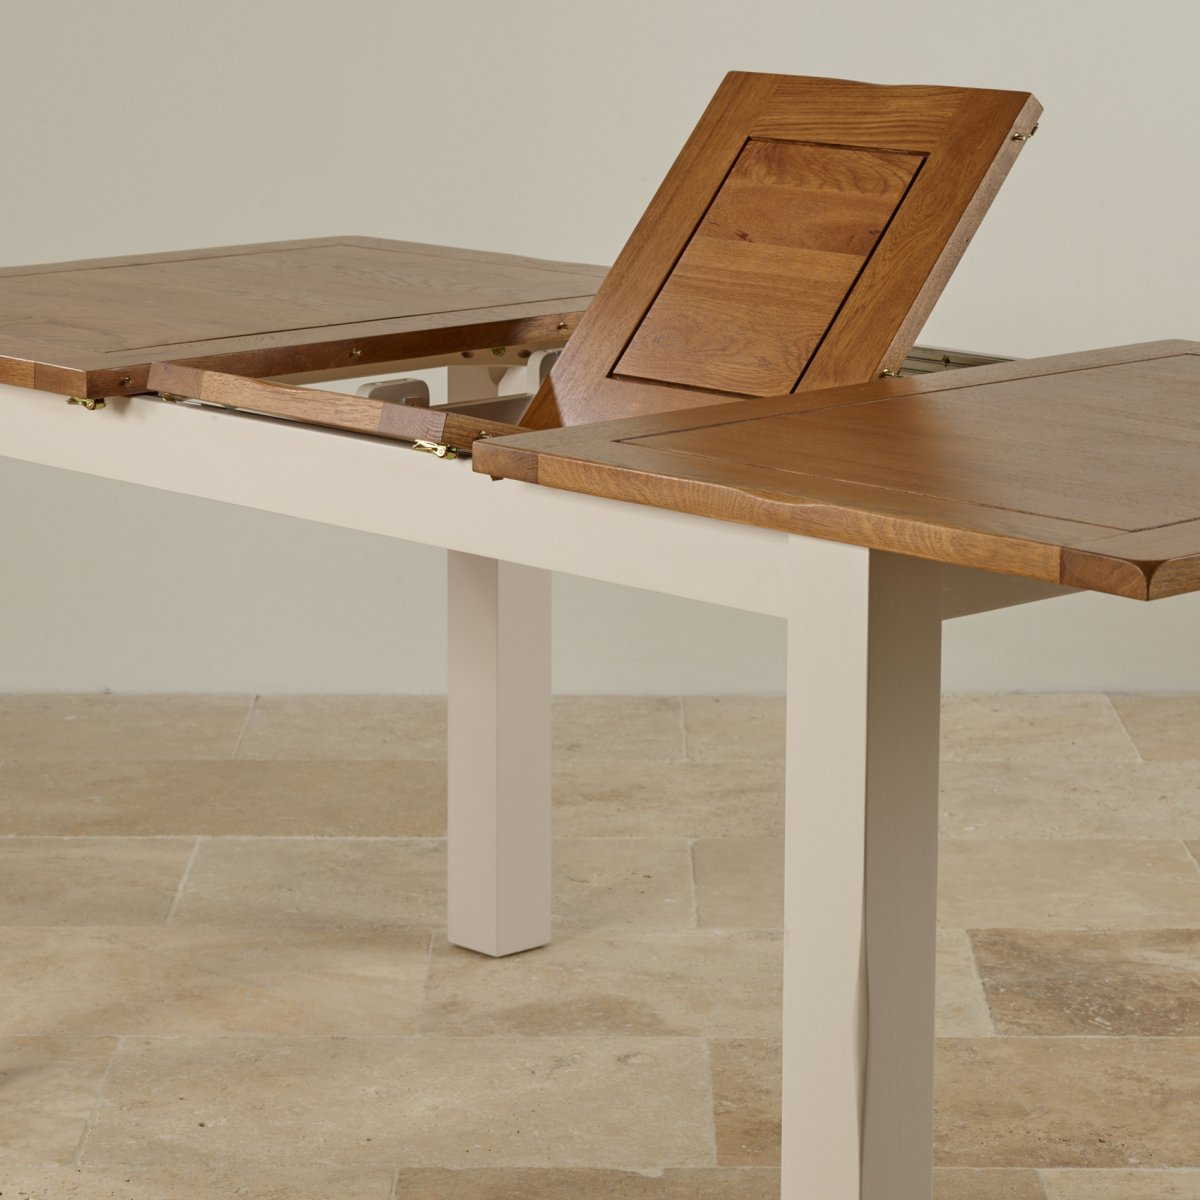 Dining table with slot in chairs